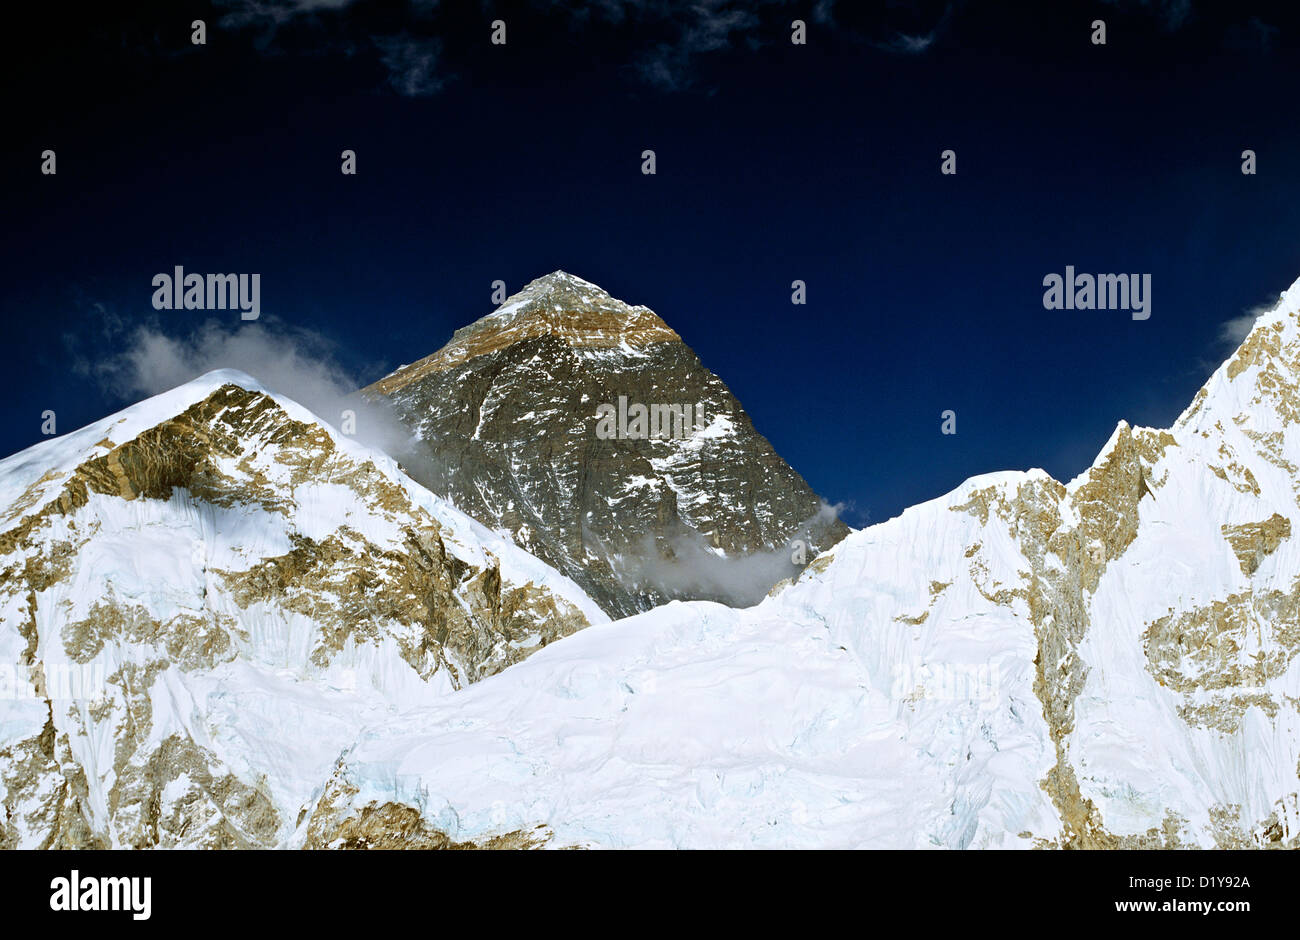 Mount Everest Nepal Asia - Stock Image